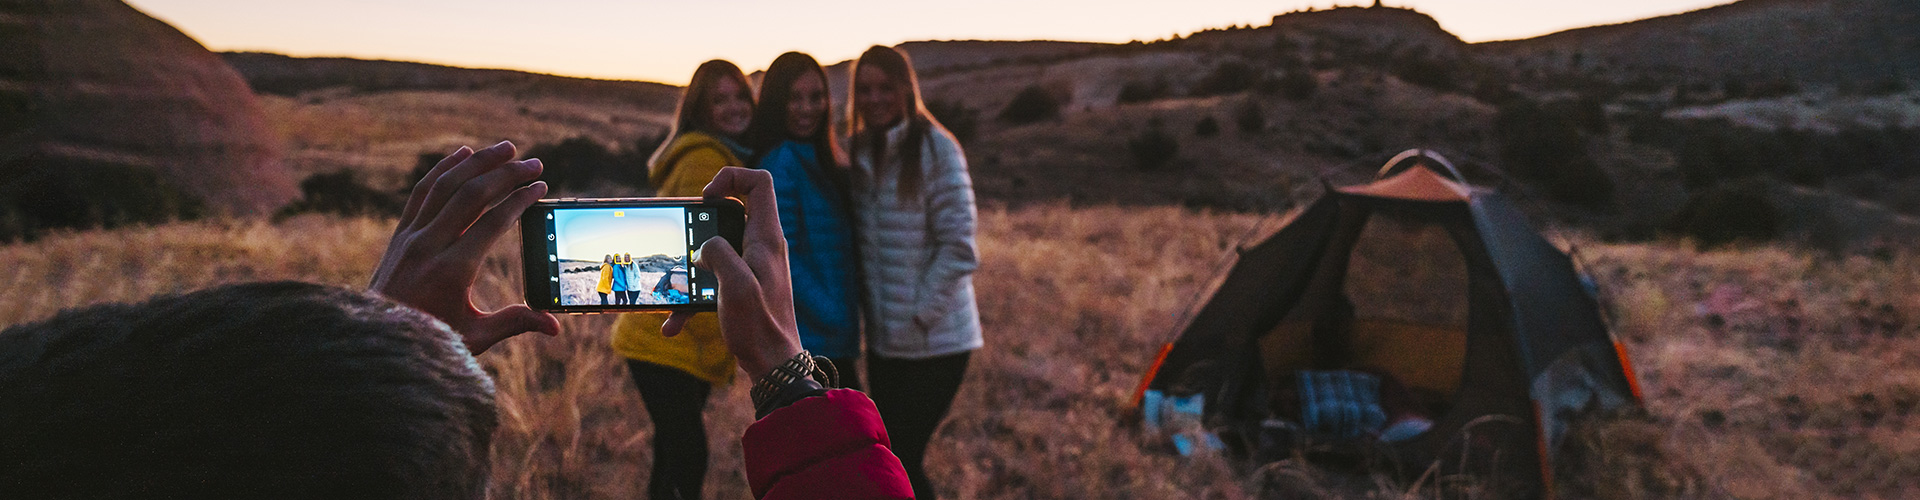 Campers taking a picture at sunset